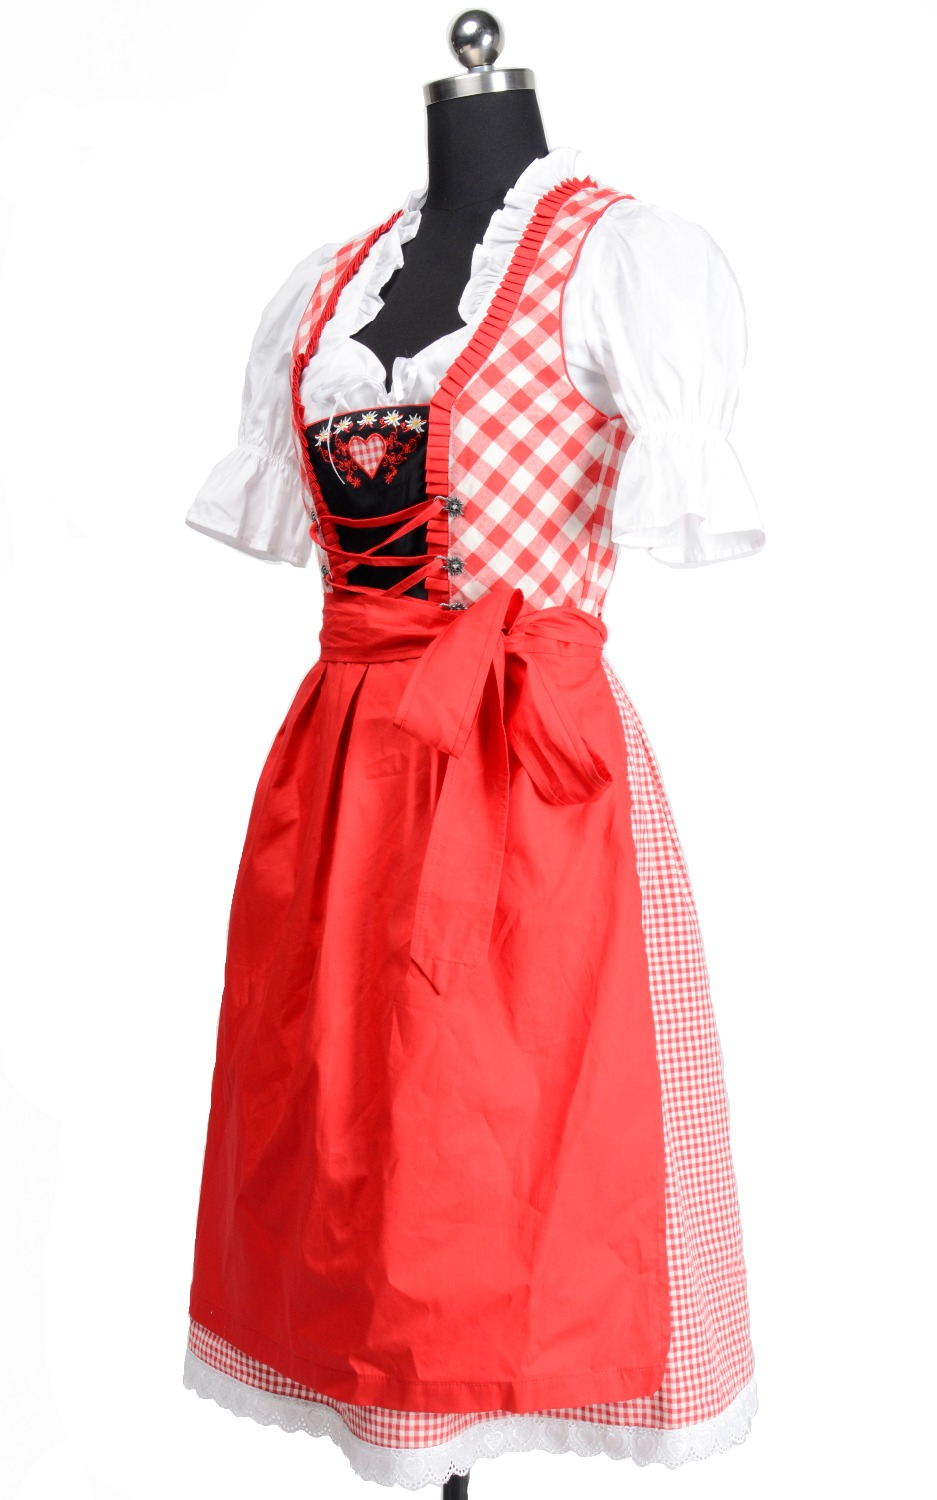 White apron ale - 2017 Oktoberfest Europe Beer Carnaval Festival October Dirndl Skirt Dress Apron Blouse Gown Embroidered High Quality Costume